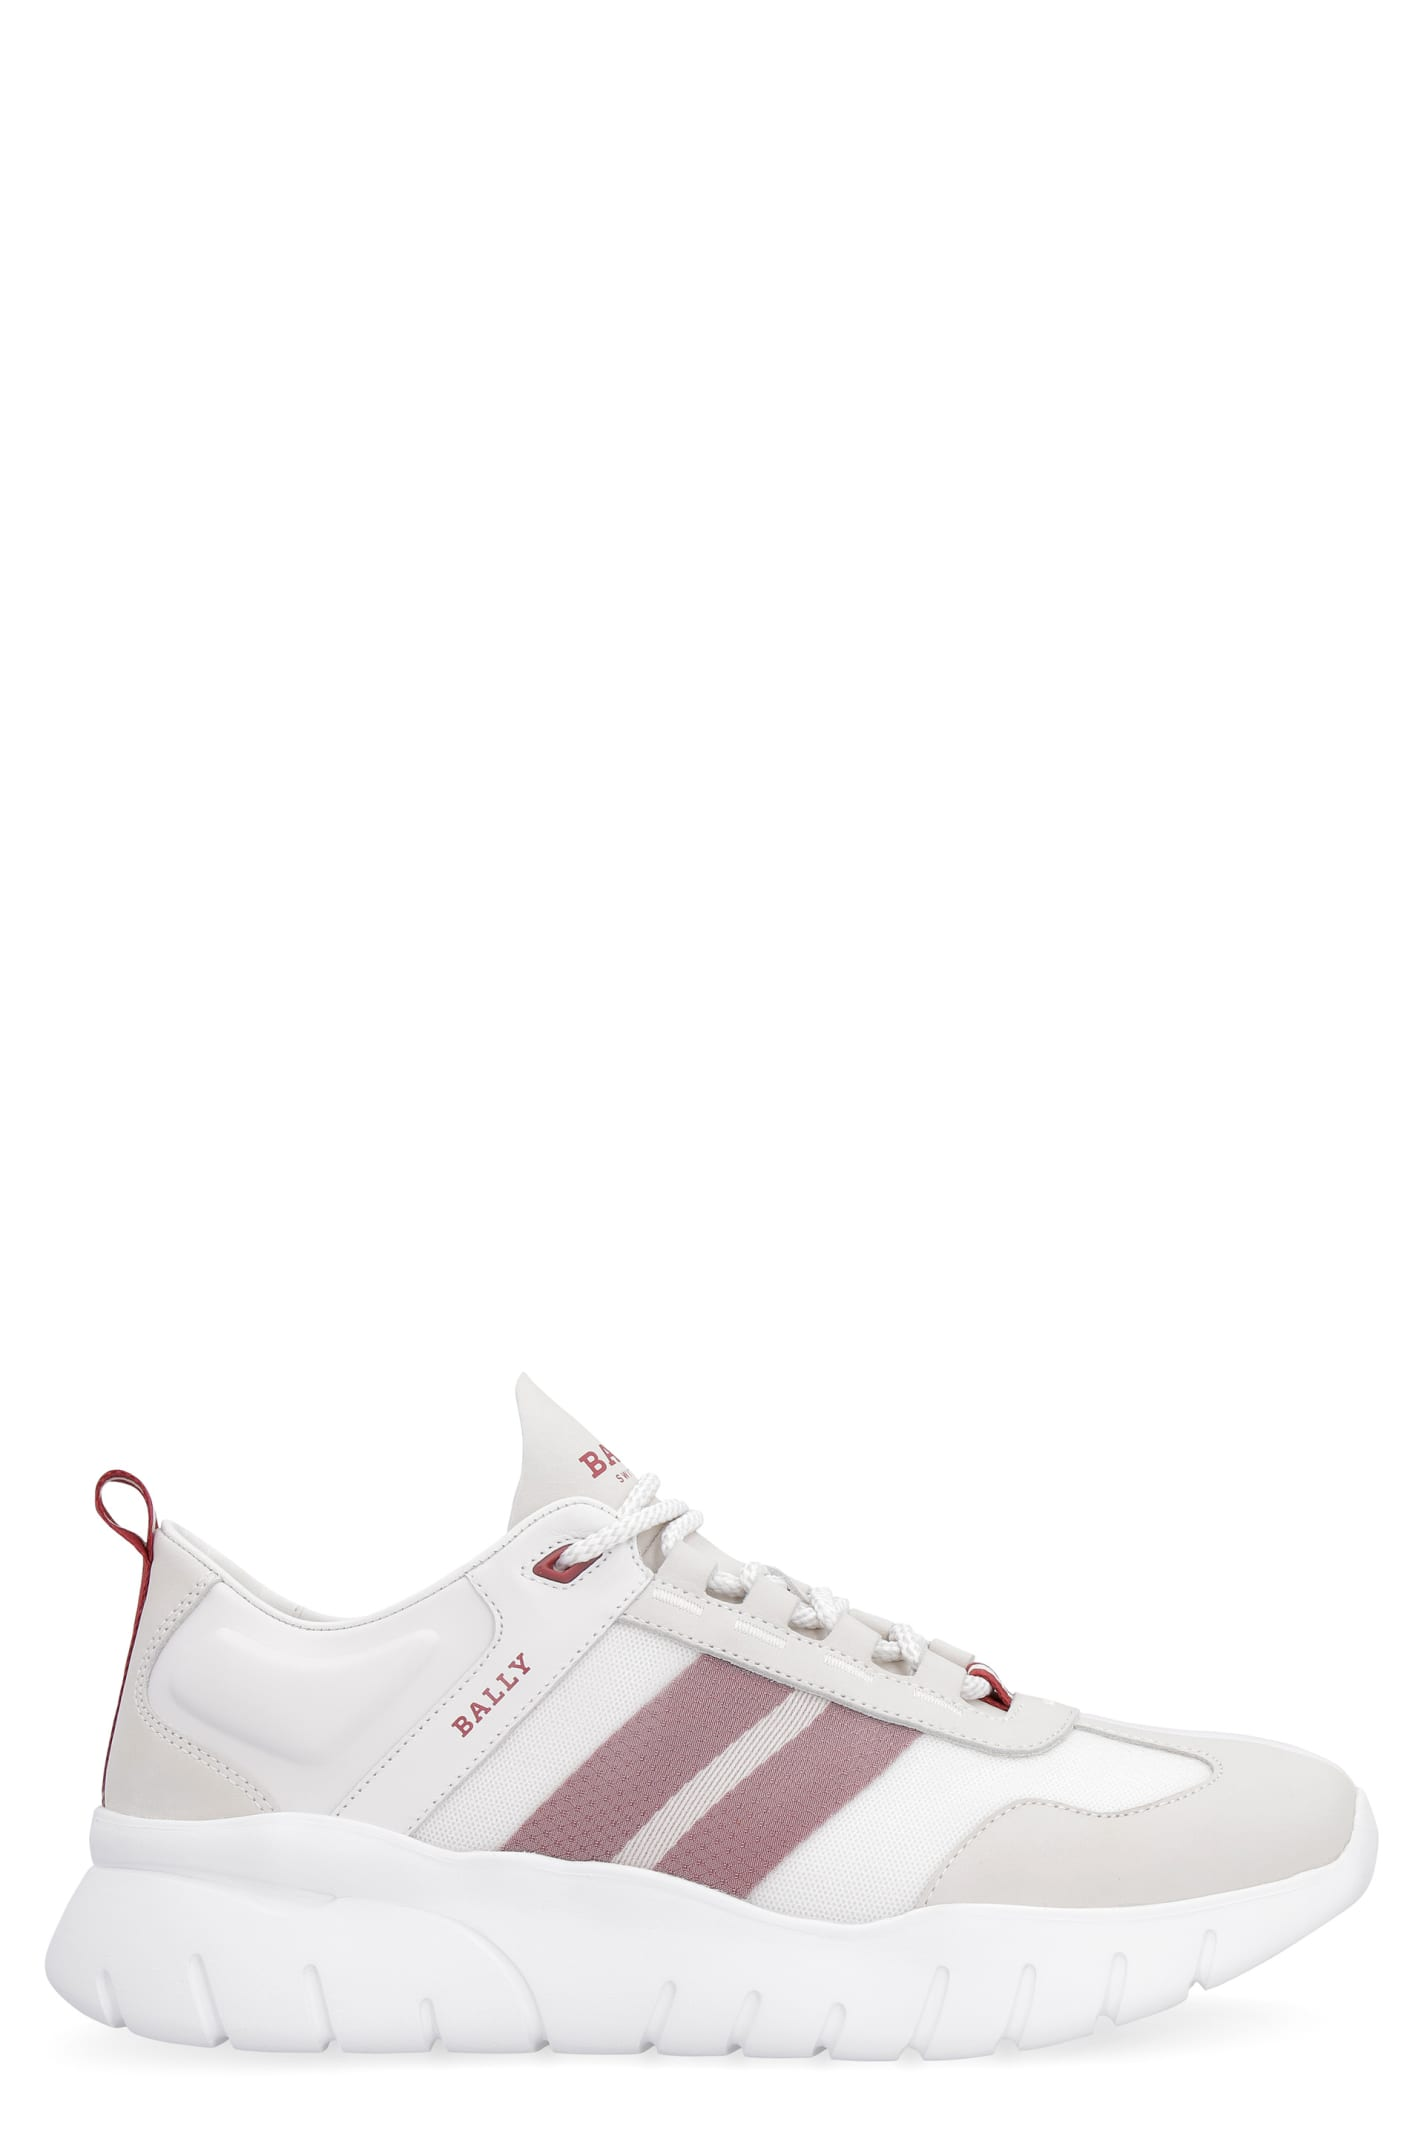 Bally Brody Low-top Sneakers